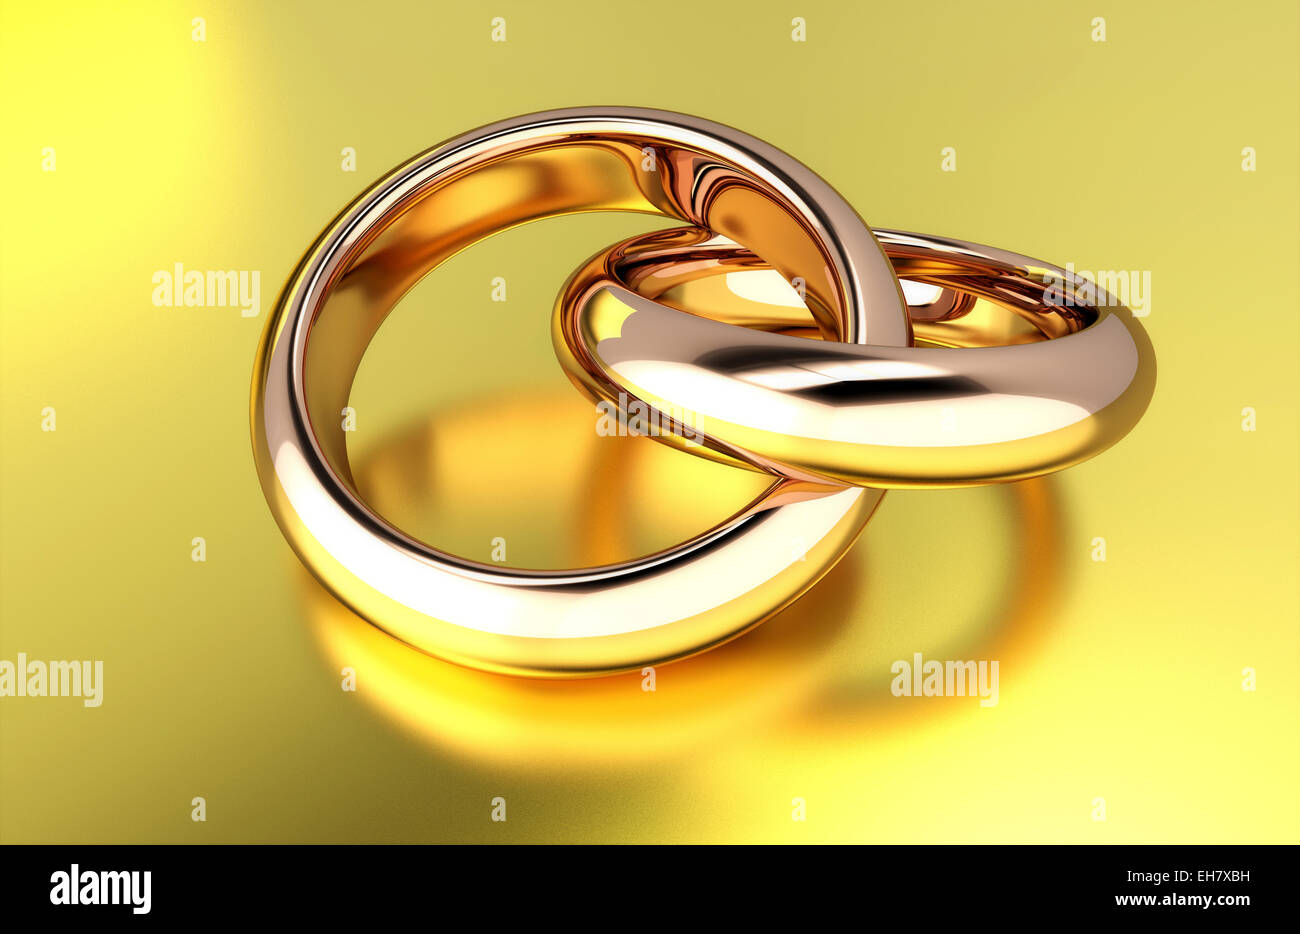 Two linked gold rings, illustration - Stock Image